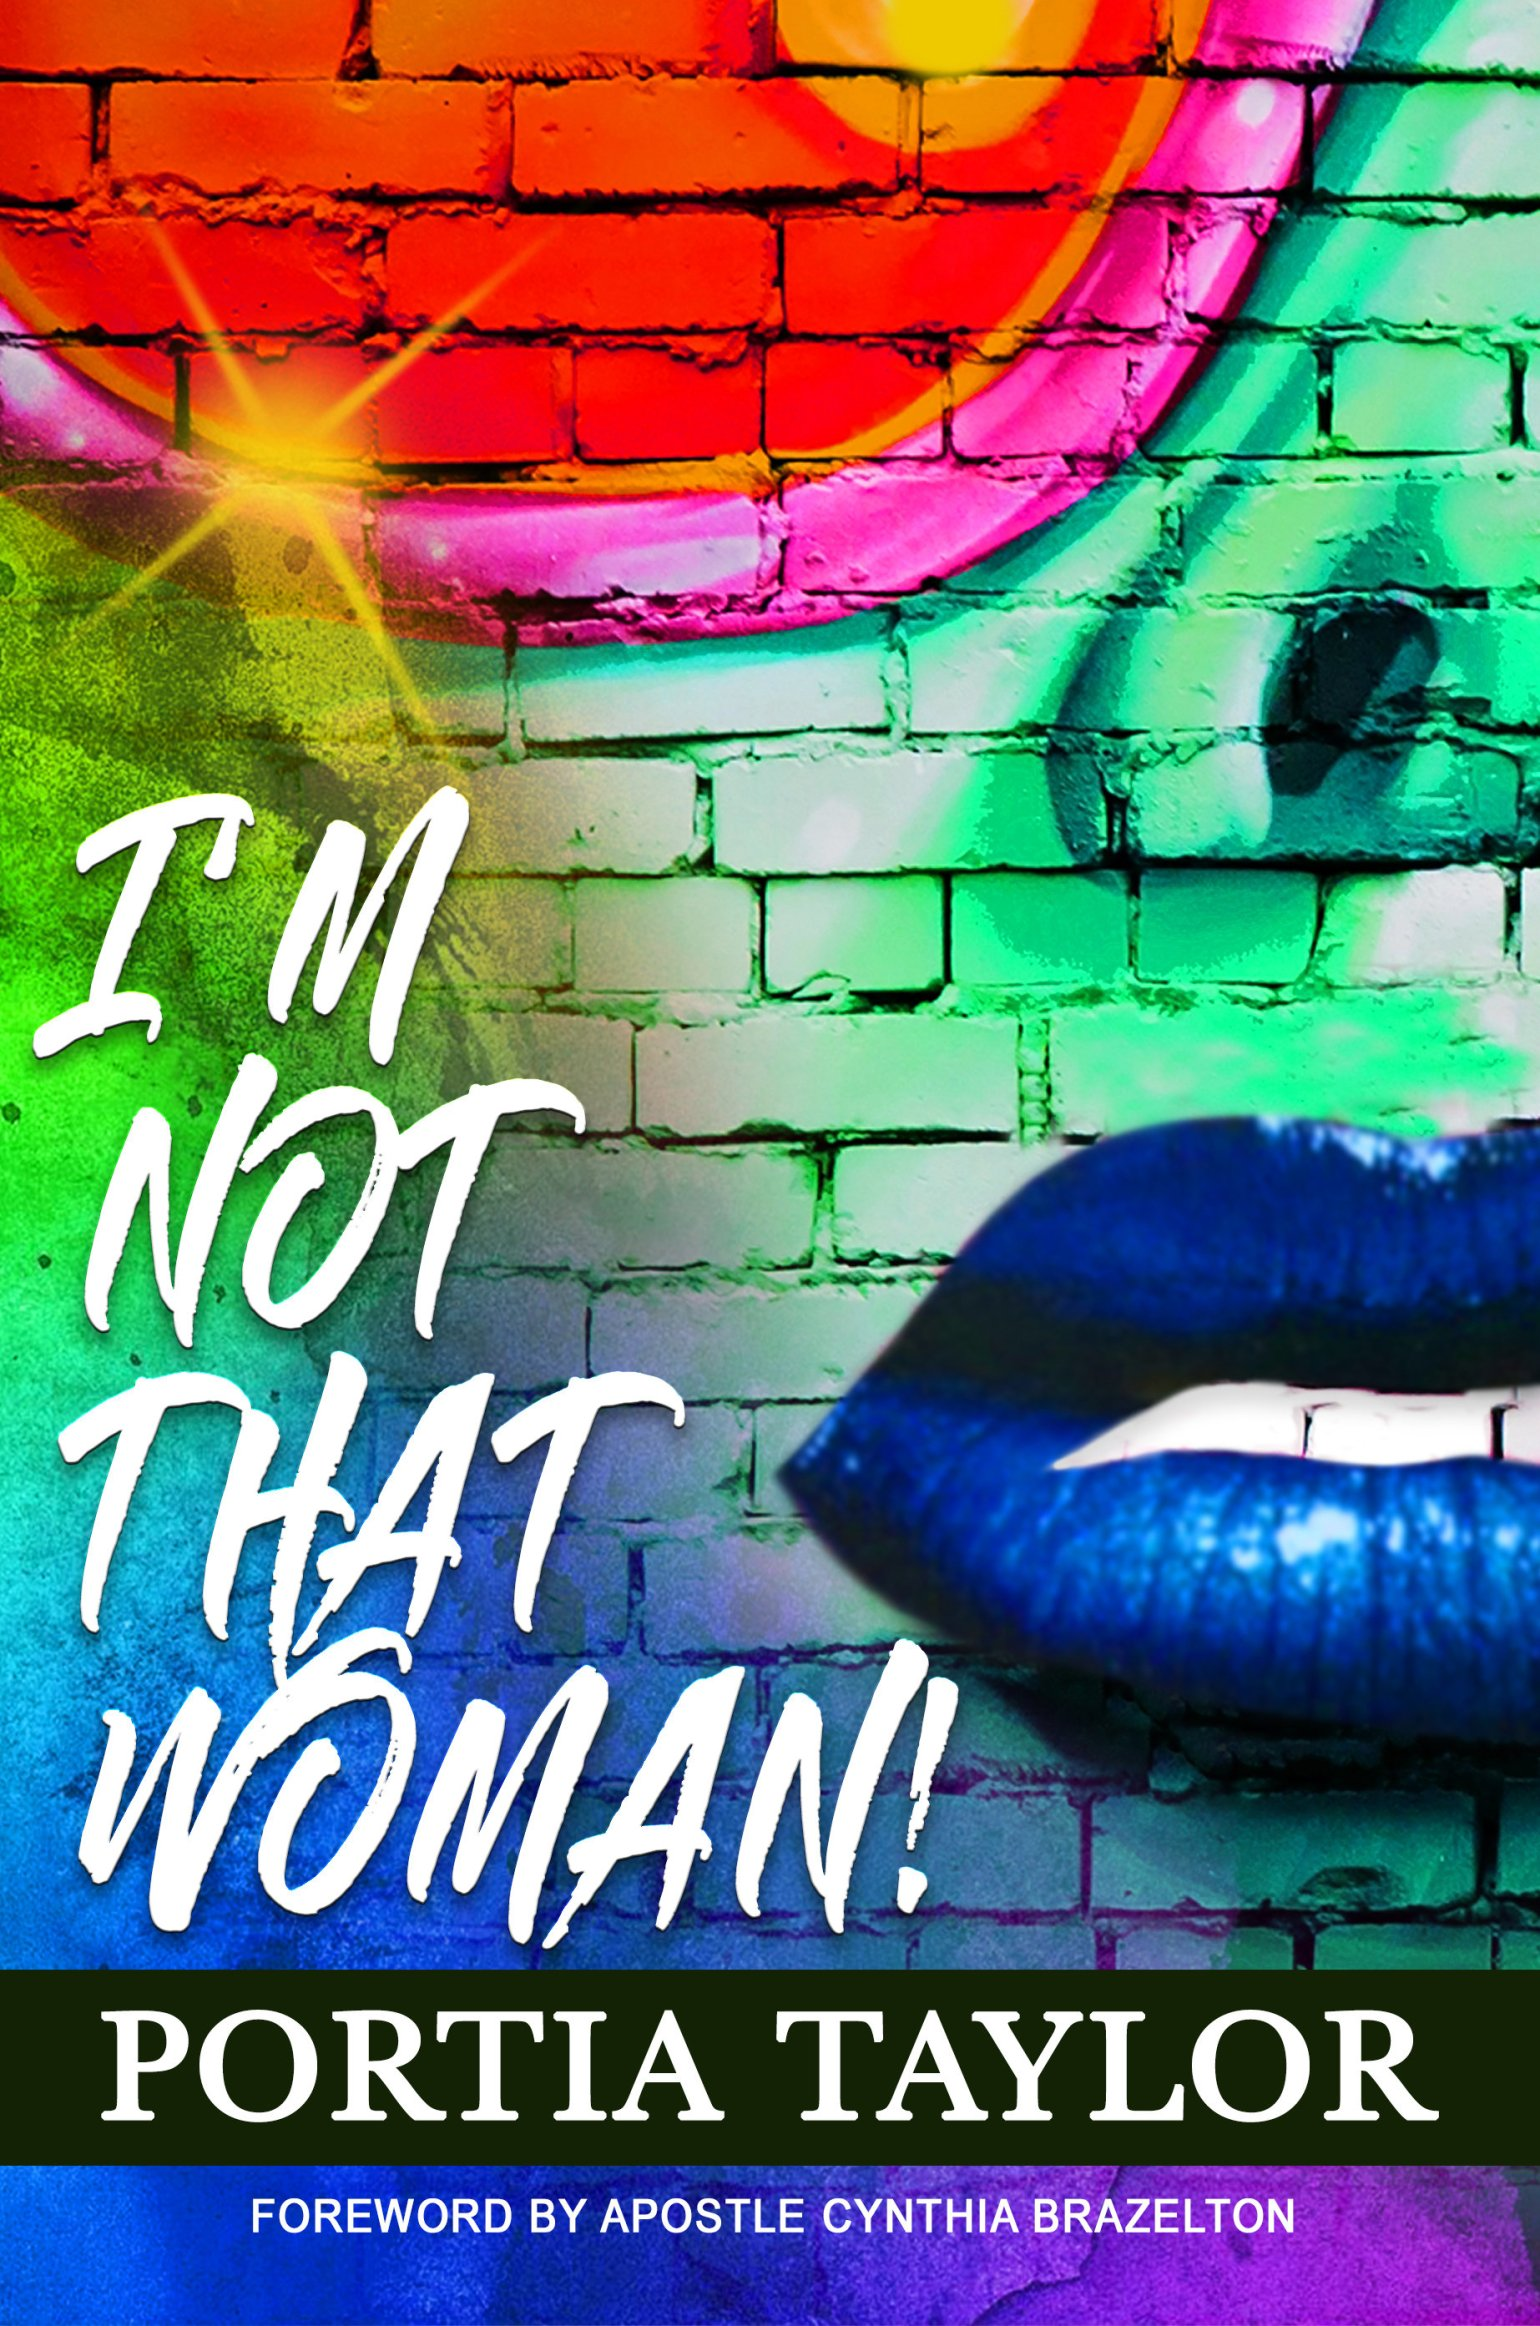 I'm Not That Woman (Paperback) by Portia Taylor 978-1642549188